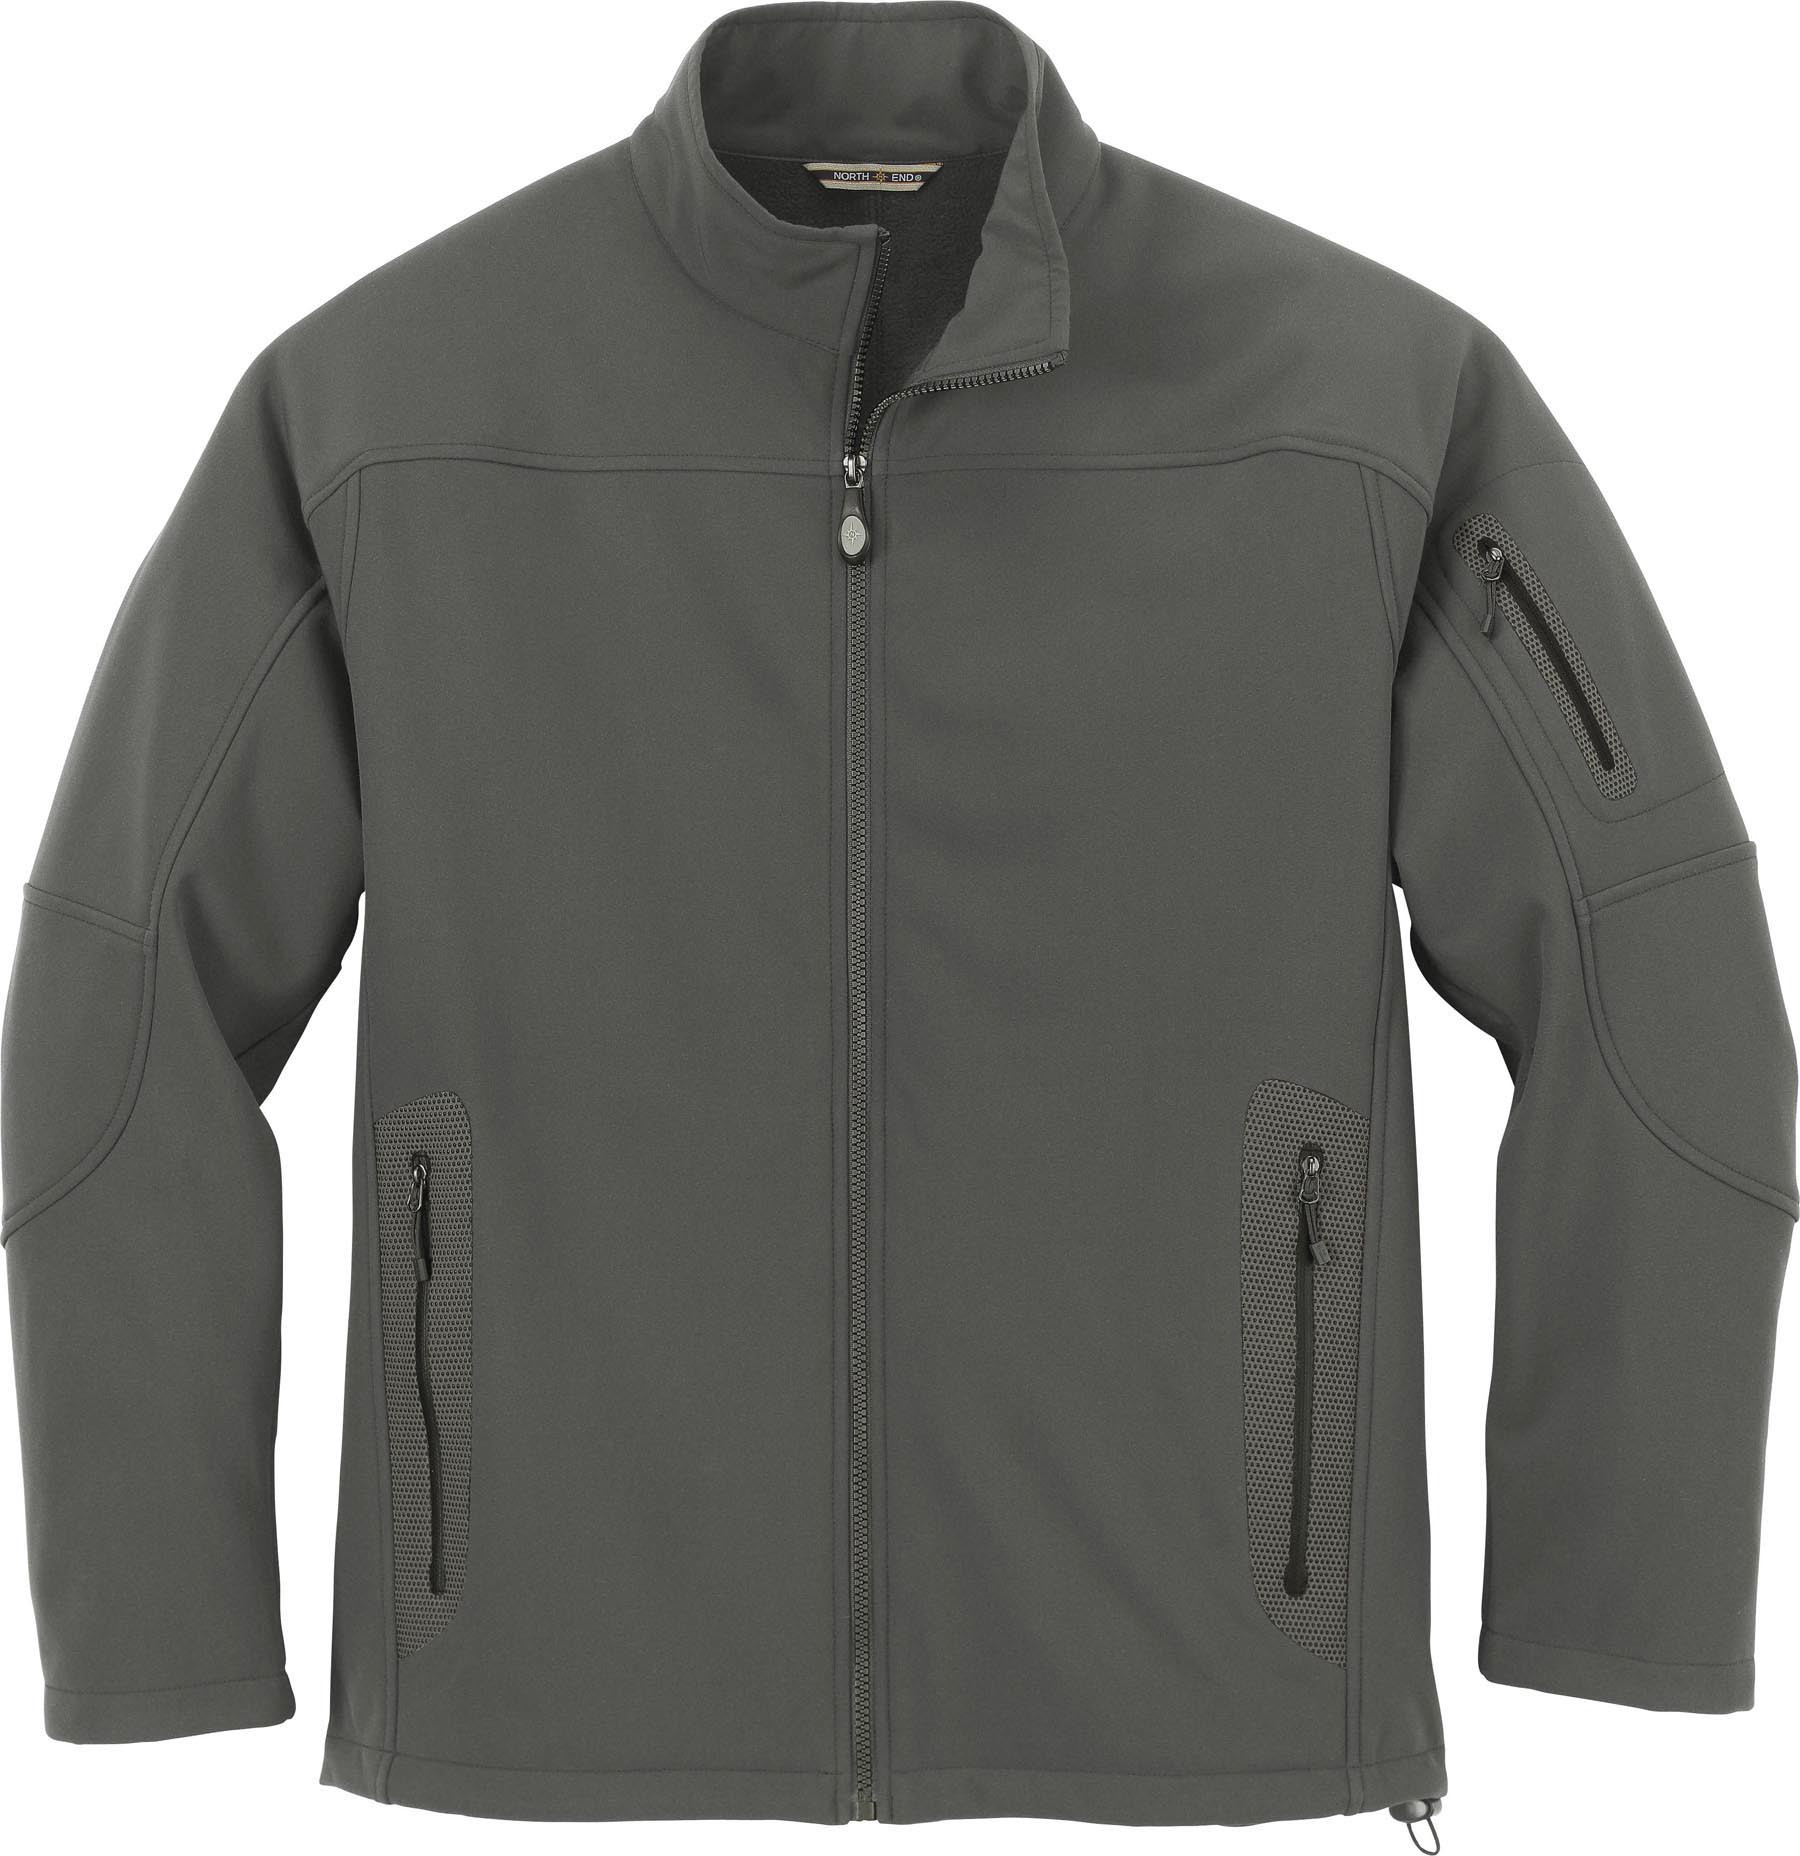 Ash City UTK 1 Warm.Logik 88138 - Men's Soft Shell Technical Jacket